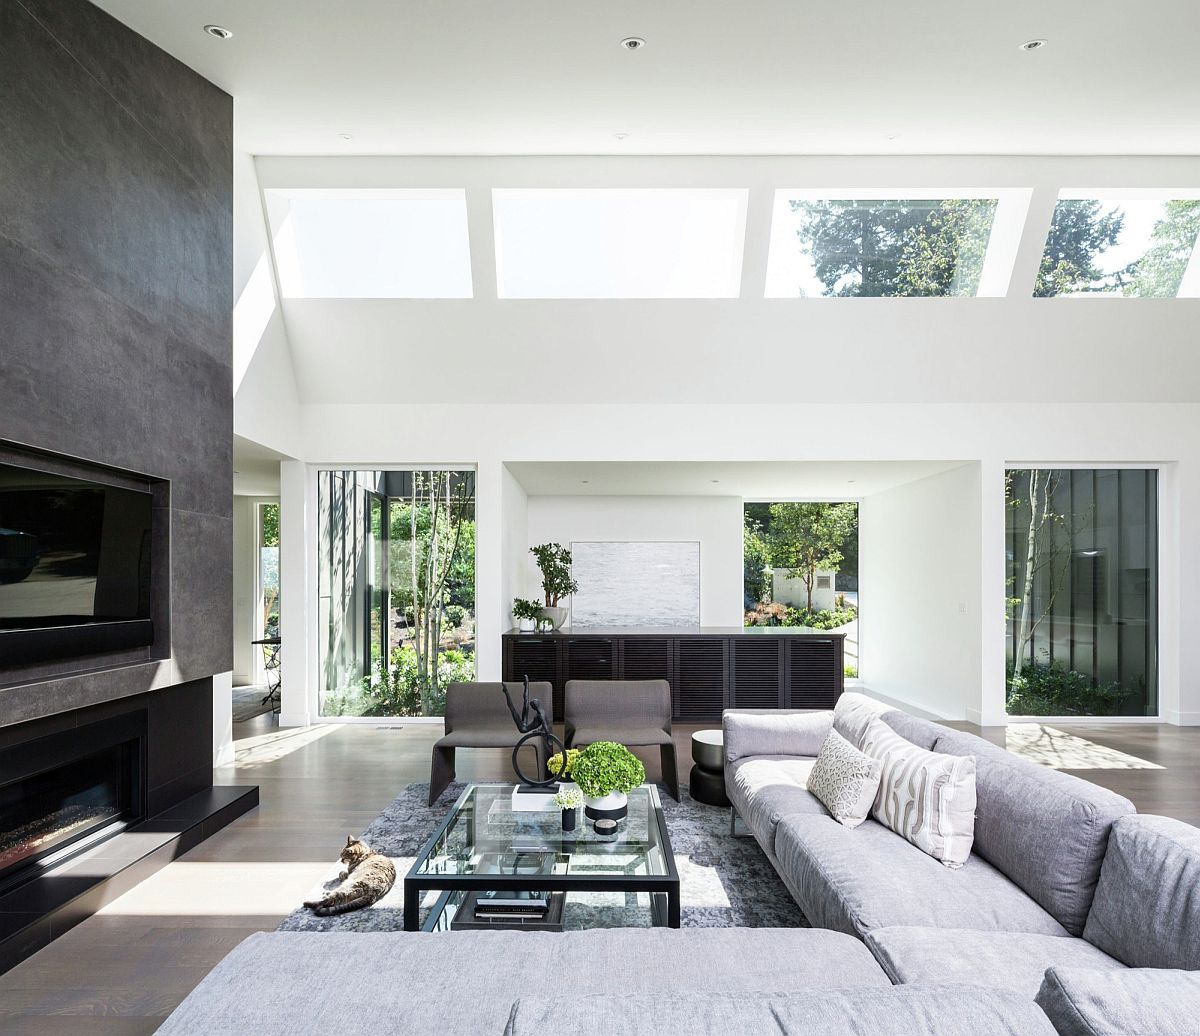 Vancouver Home by Randy Bens Architect Extends its Living Space Outdoors